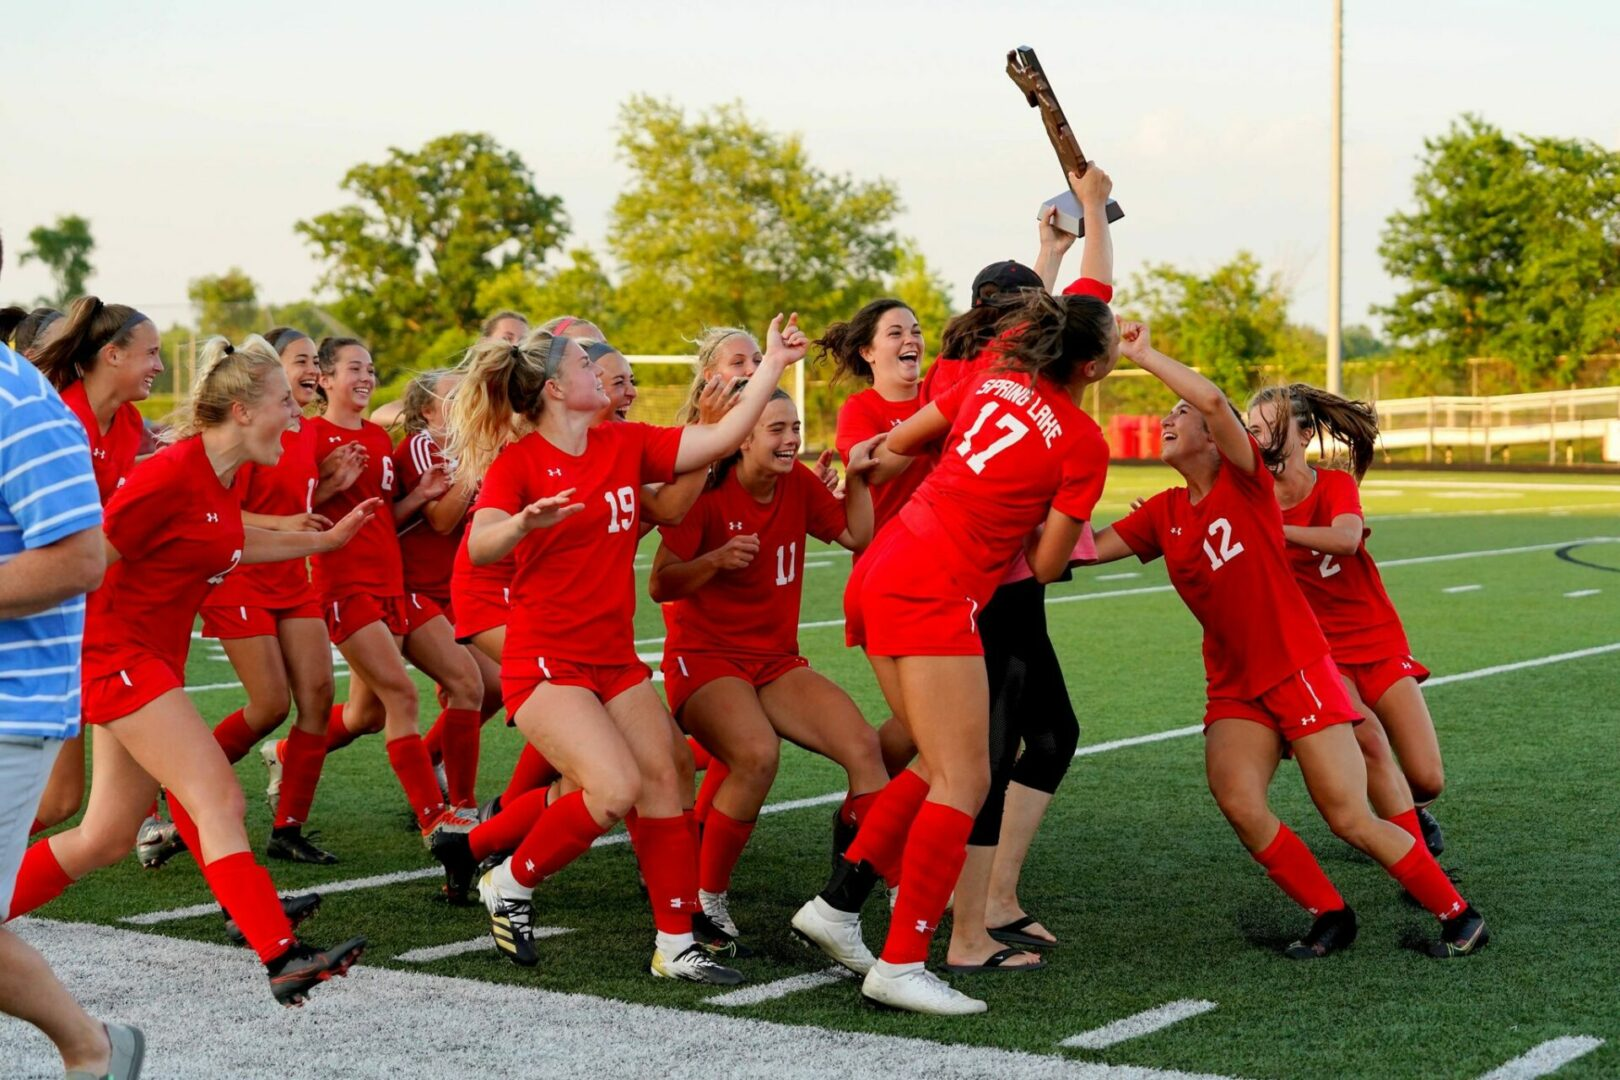 Spring Lake girls soccer squad overcomes bus breakdown, tough Cadillac goalie to win 1-0 in Division 2 quarterfinal contest